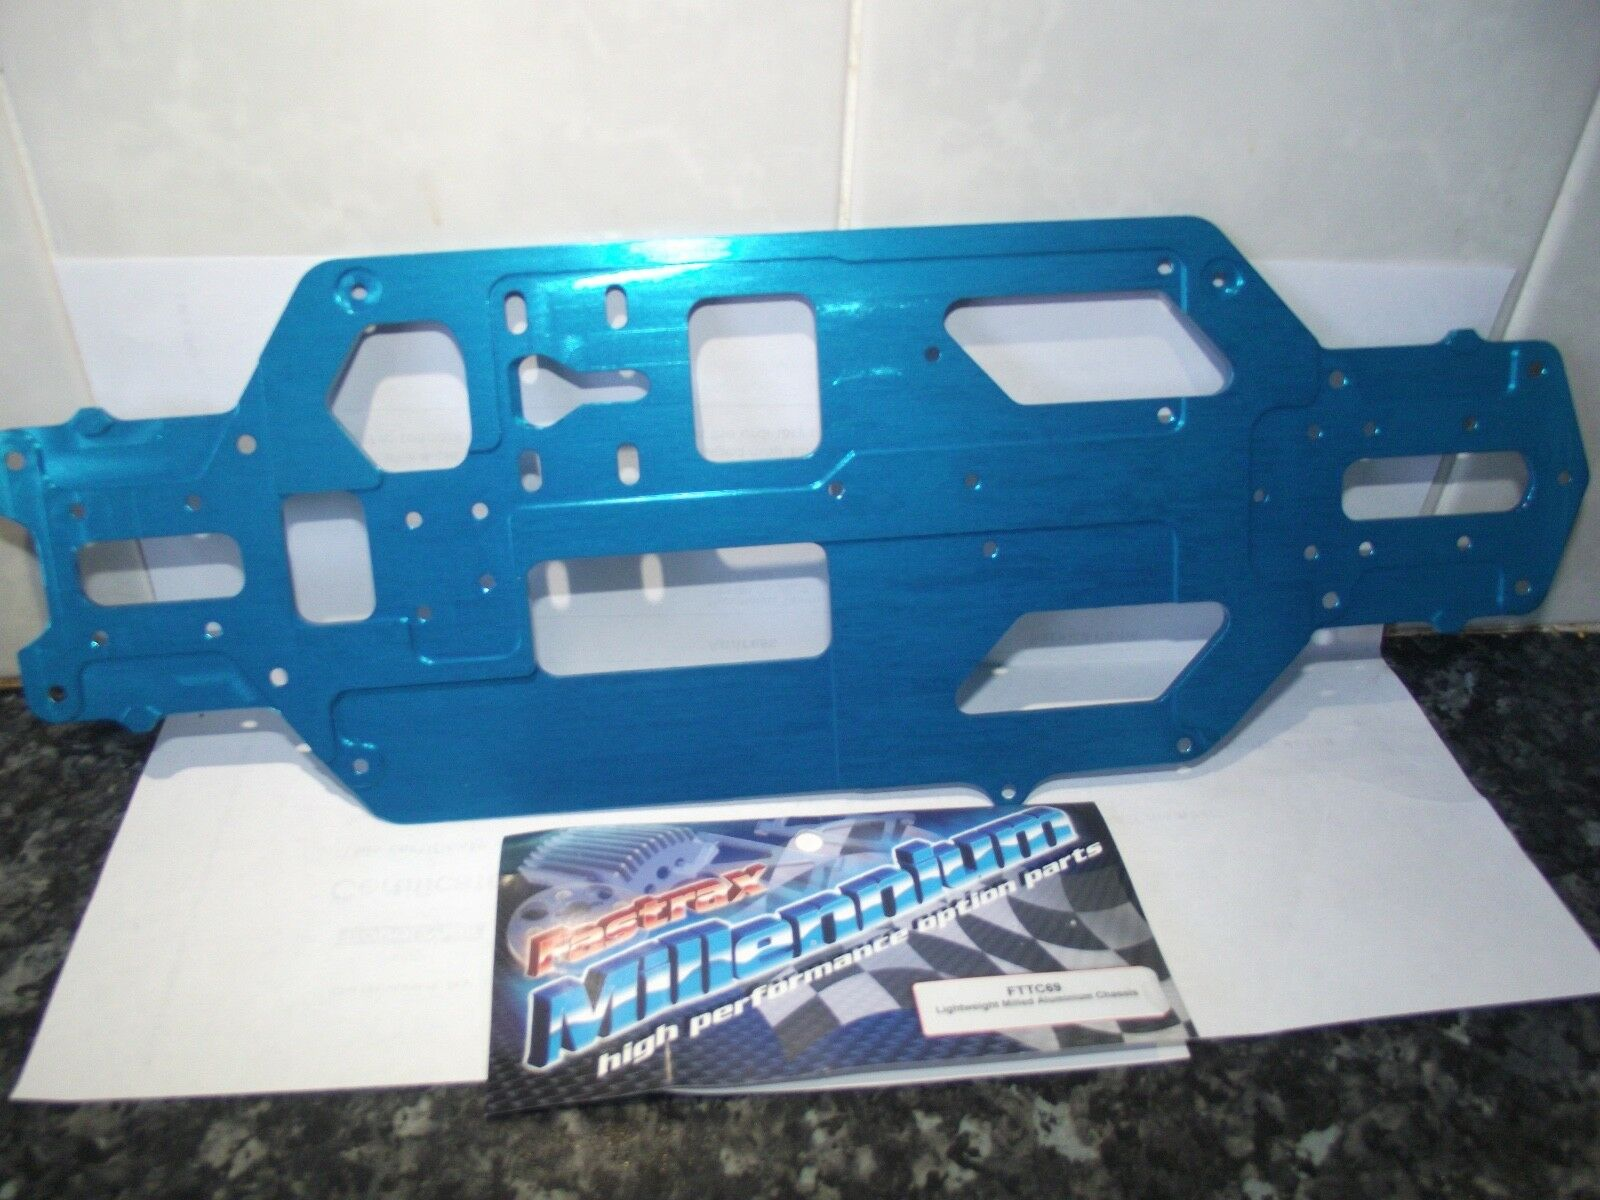 Fastrax fttc69 Lightweight Milled Aluminium Chassis bluee 1pc